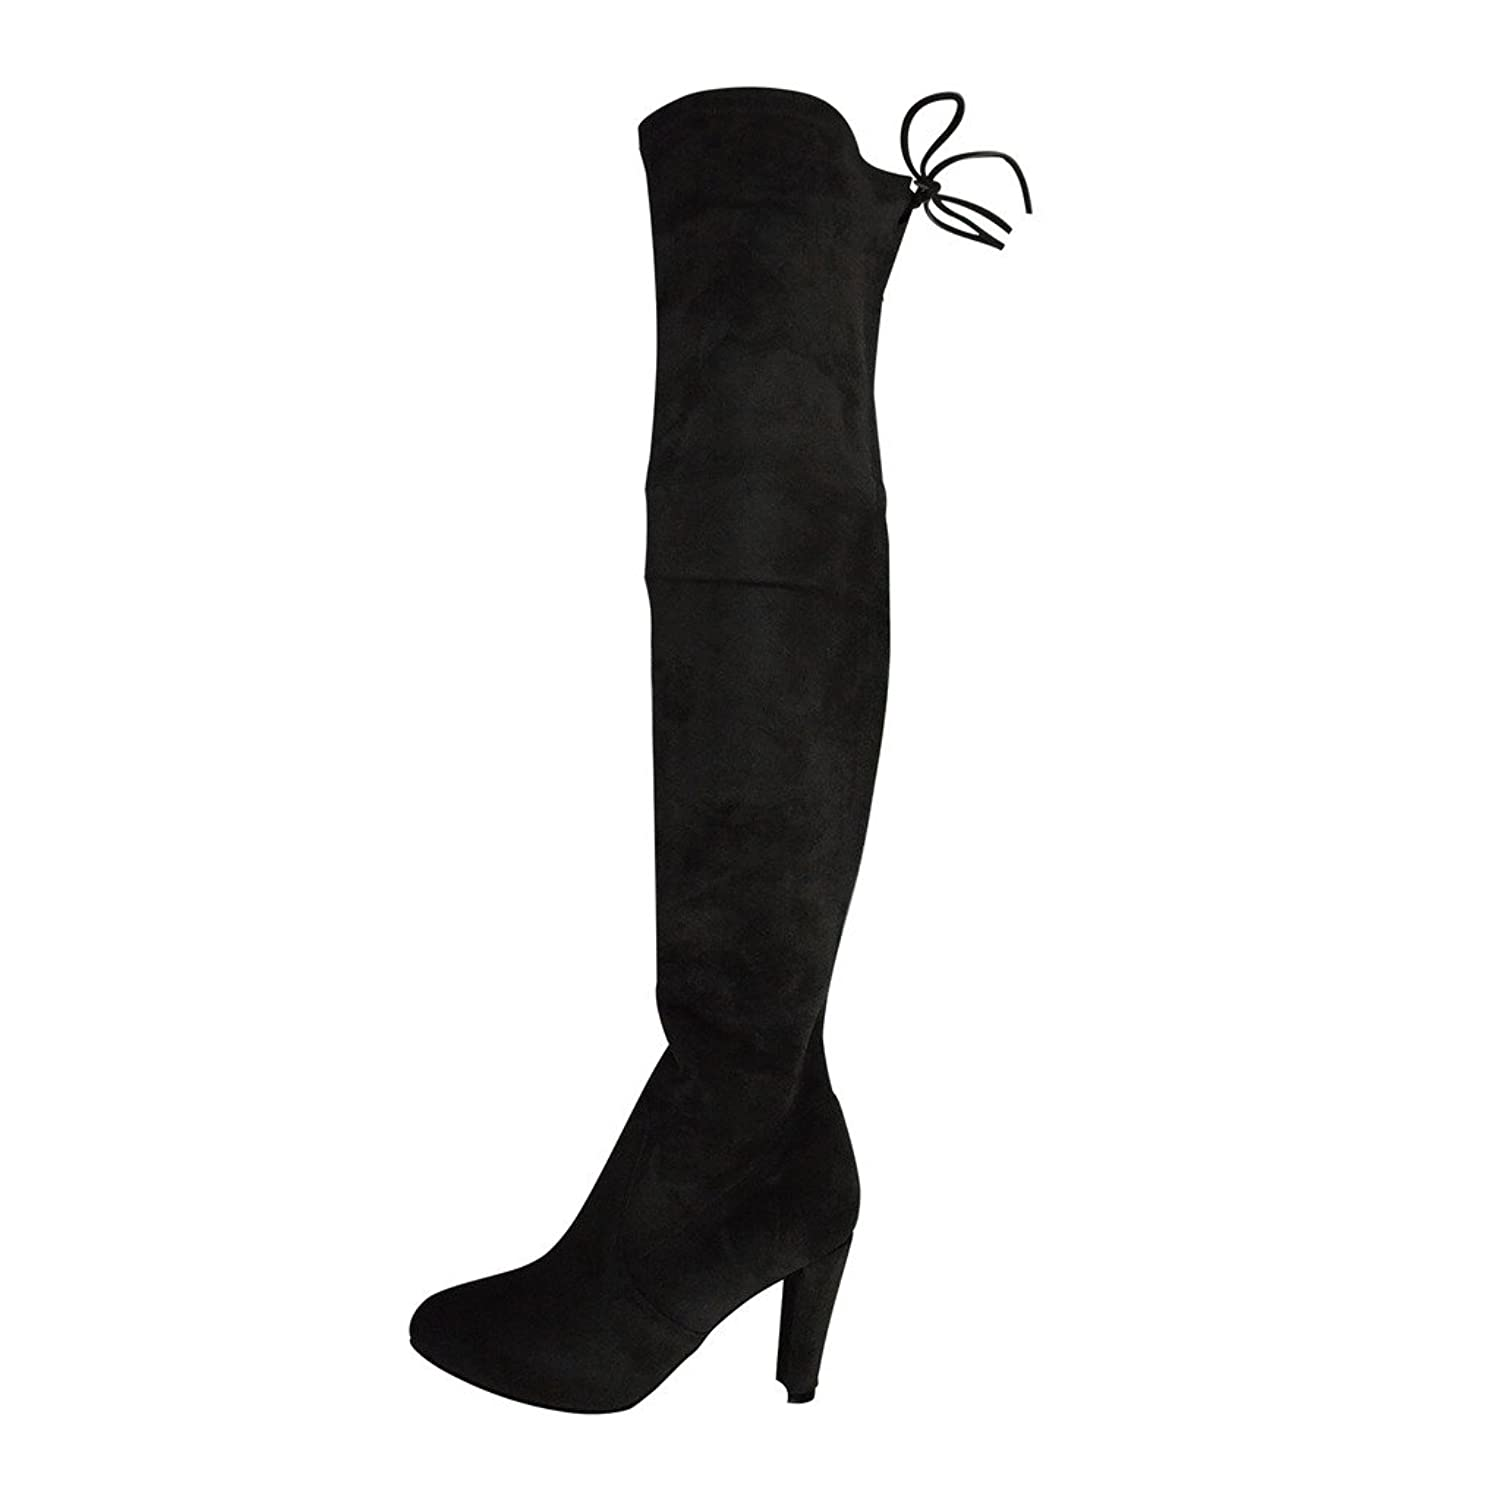 Kaitlyn Pan Microsuede High Heel Over The Knee Thigh High Boots